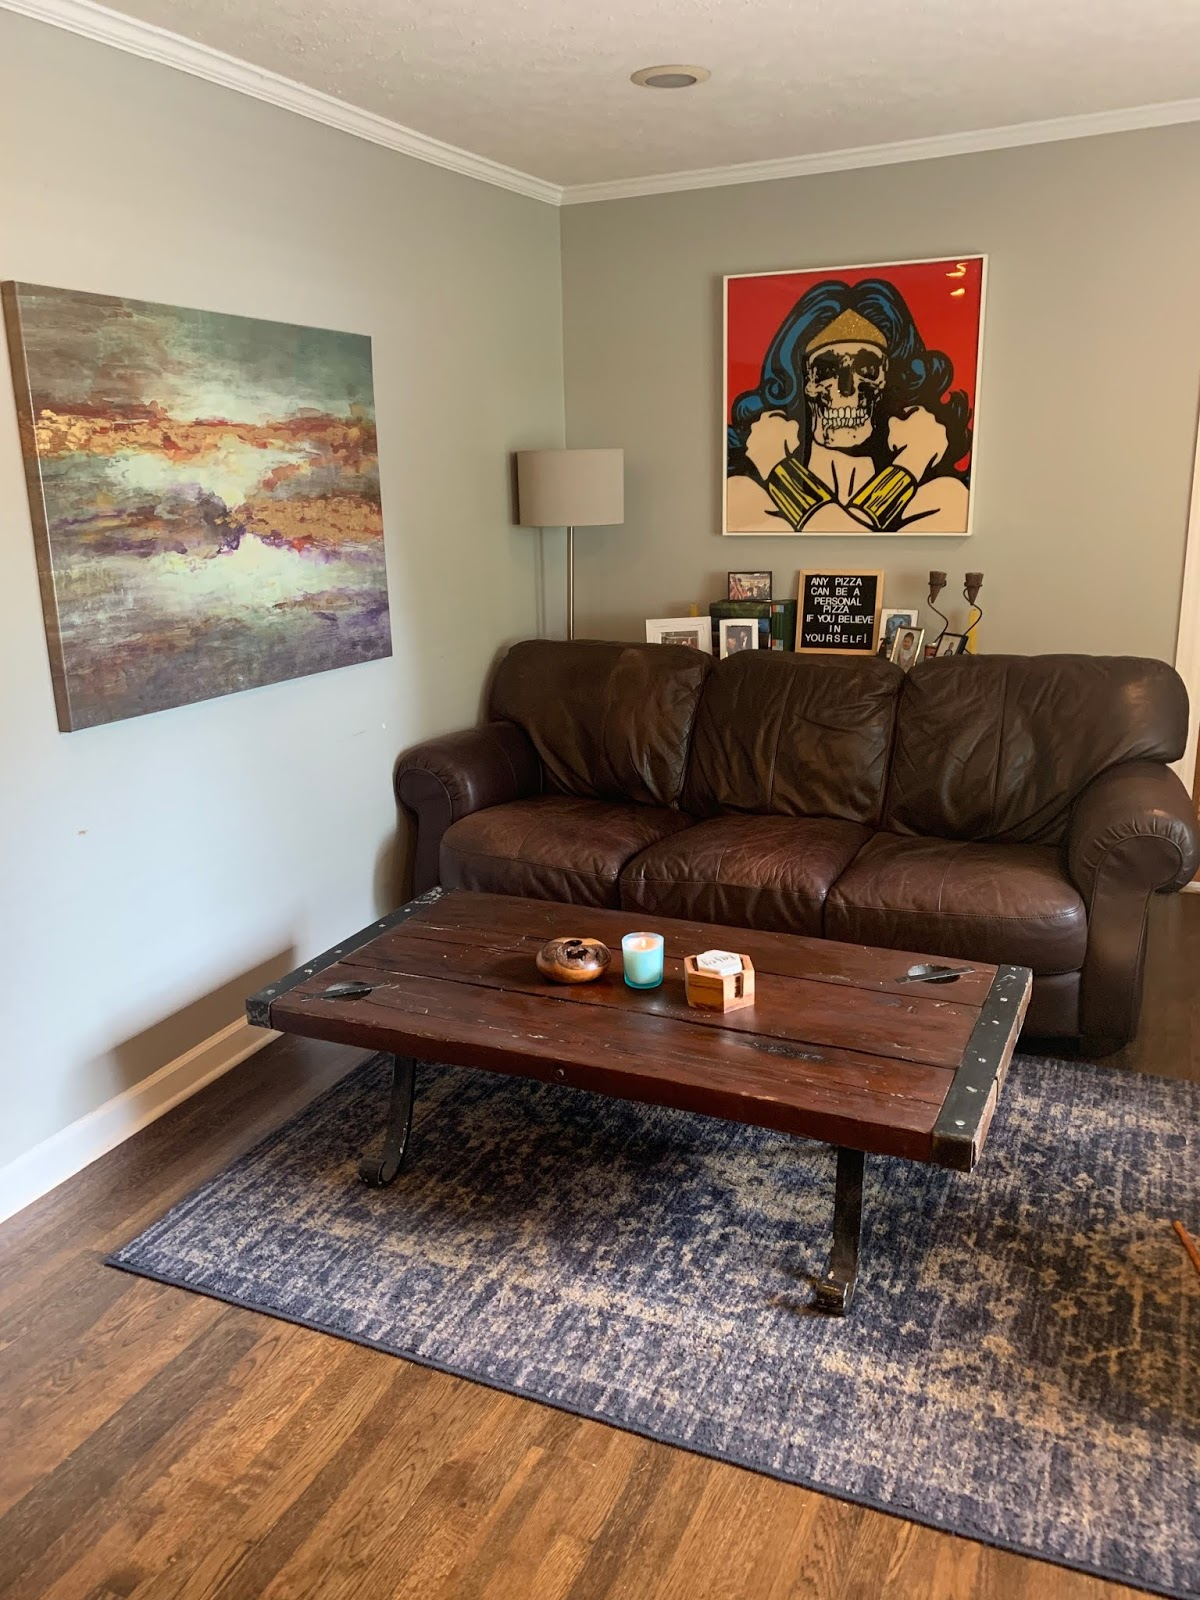 a living room with an abstract painting and a painting of wonder woman